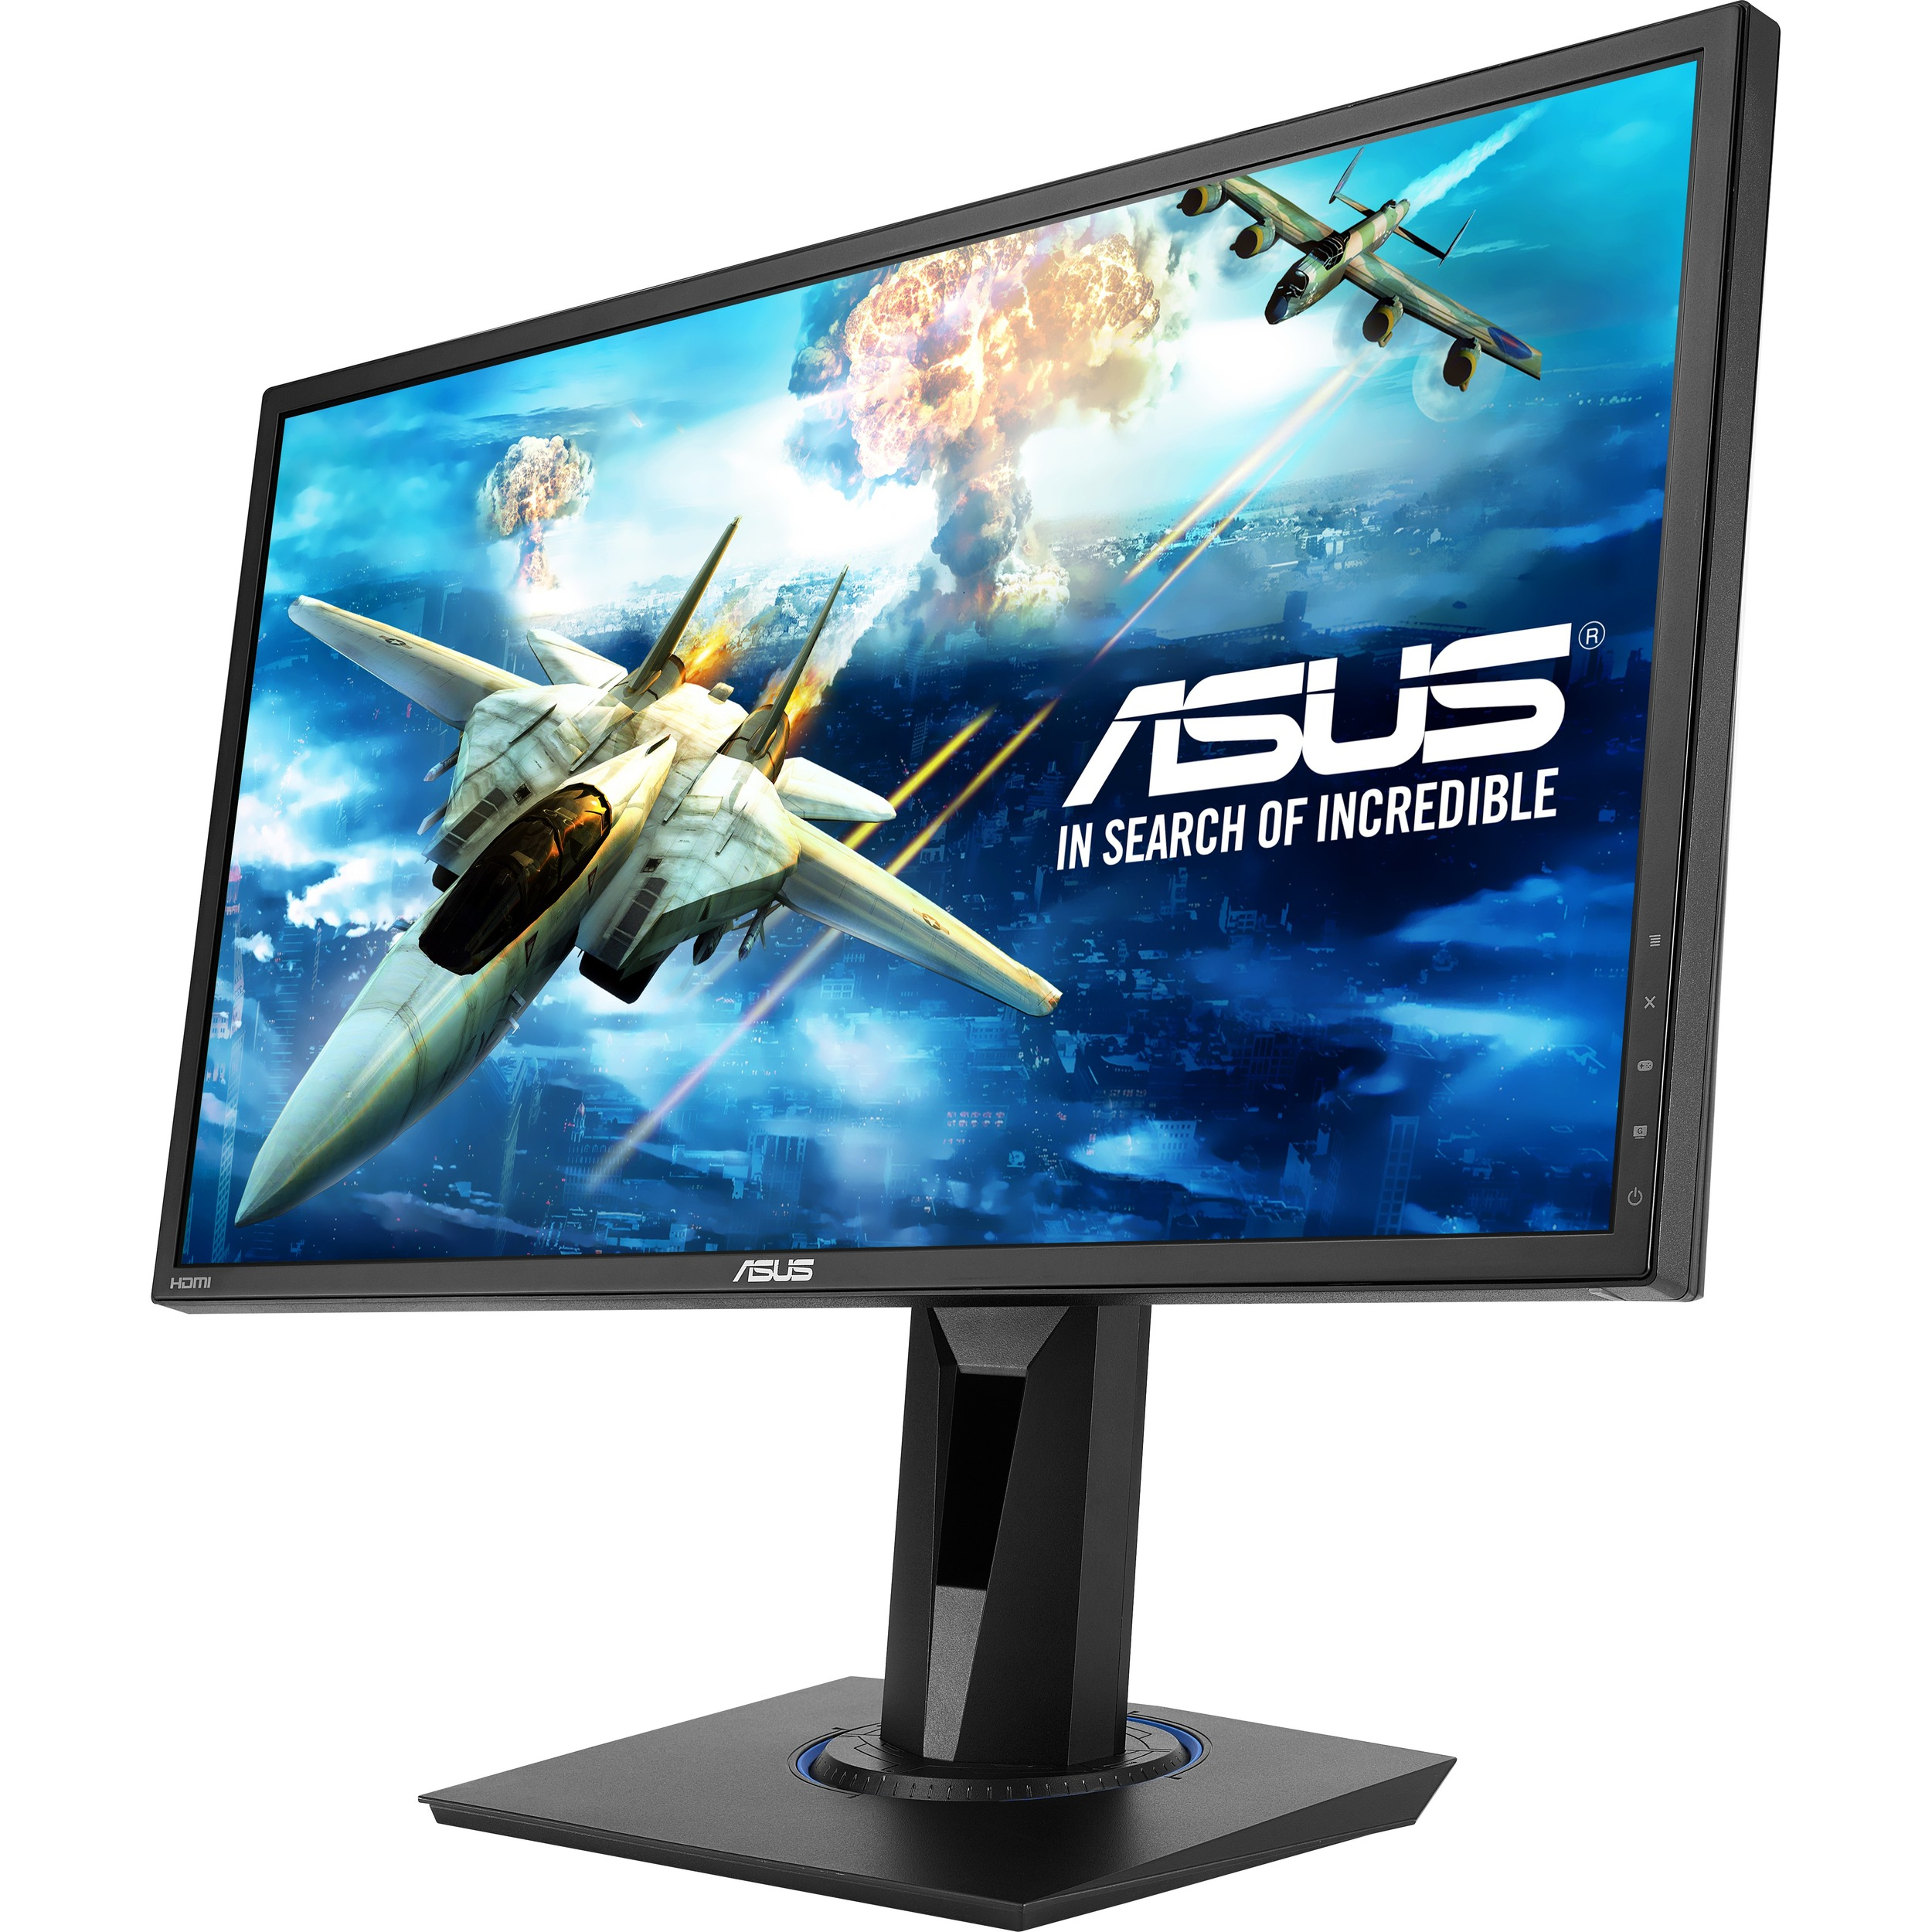 Asus VG245H 24inch LED Monitor - 16:9 - 1 ms